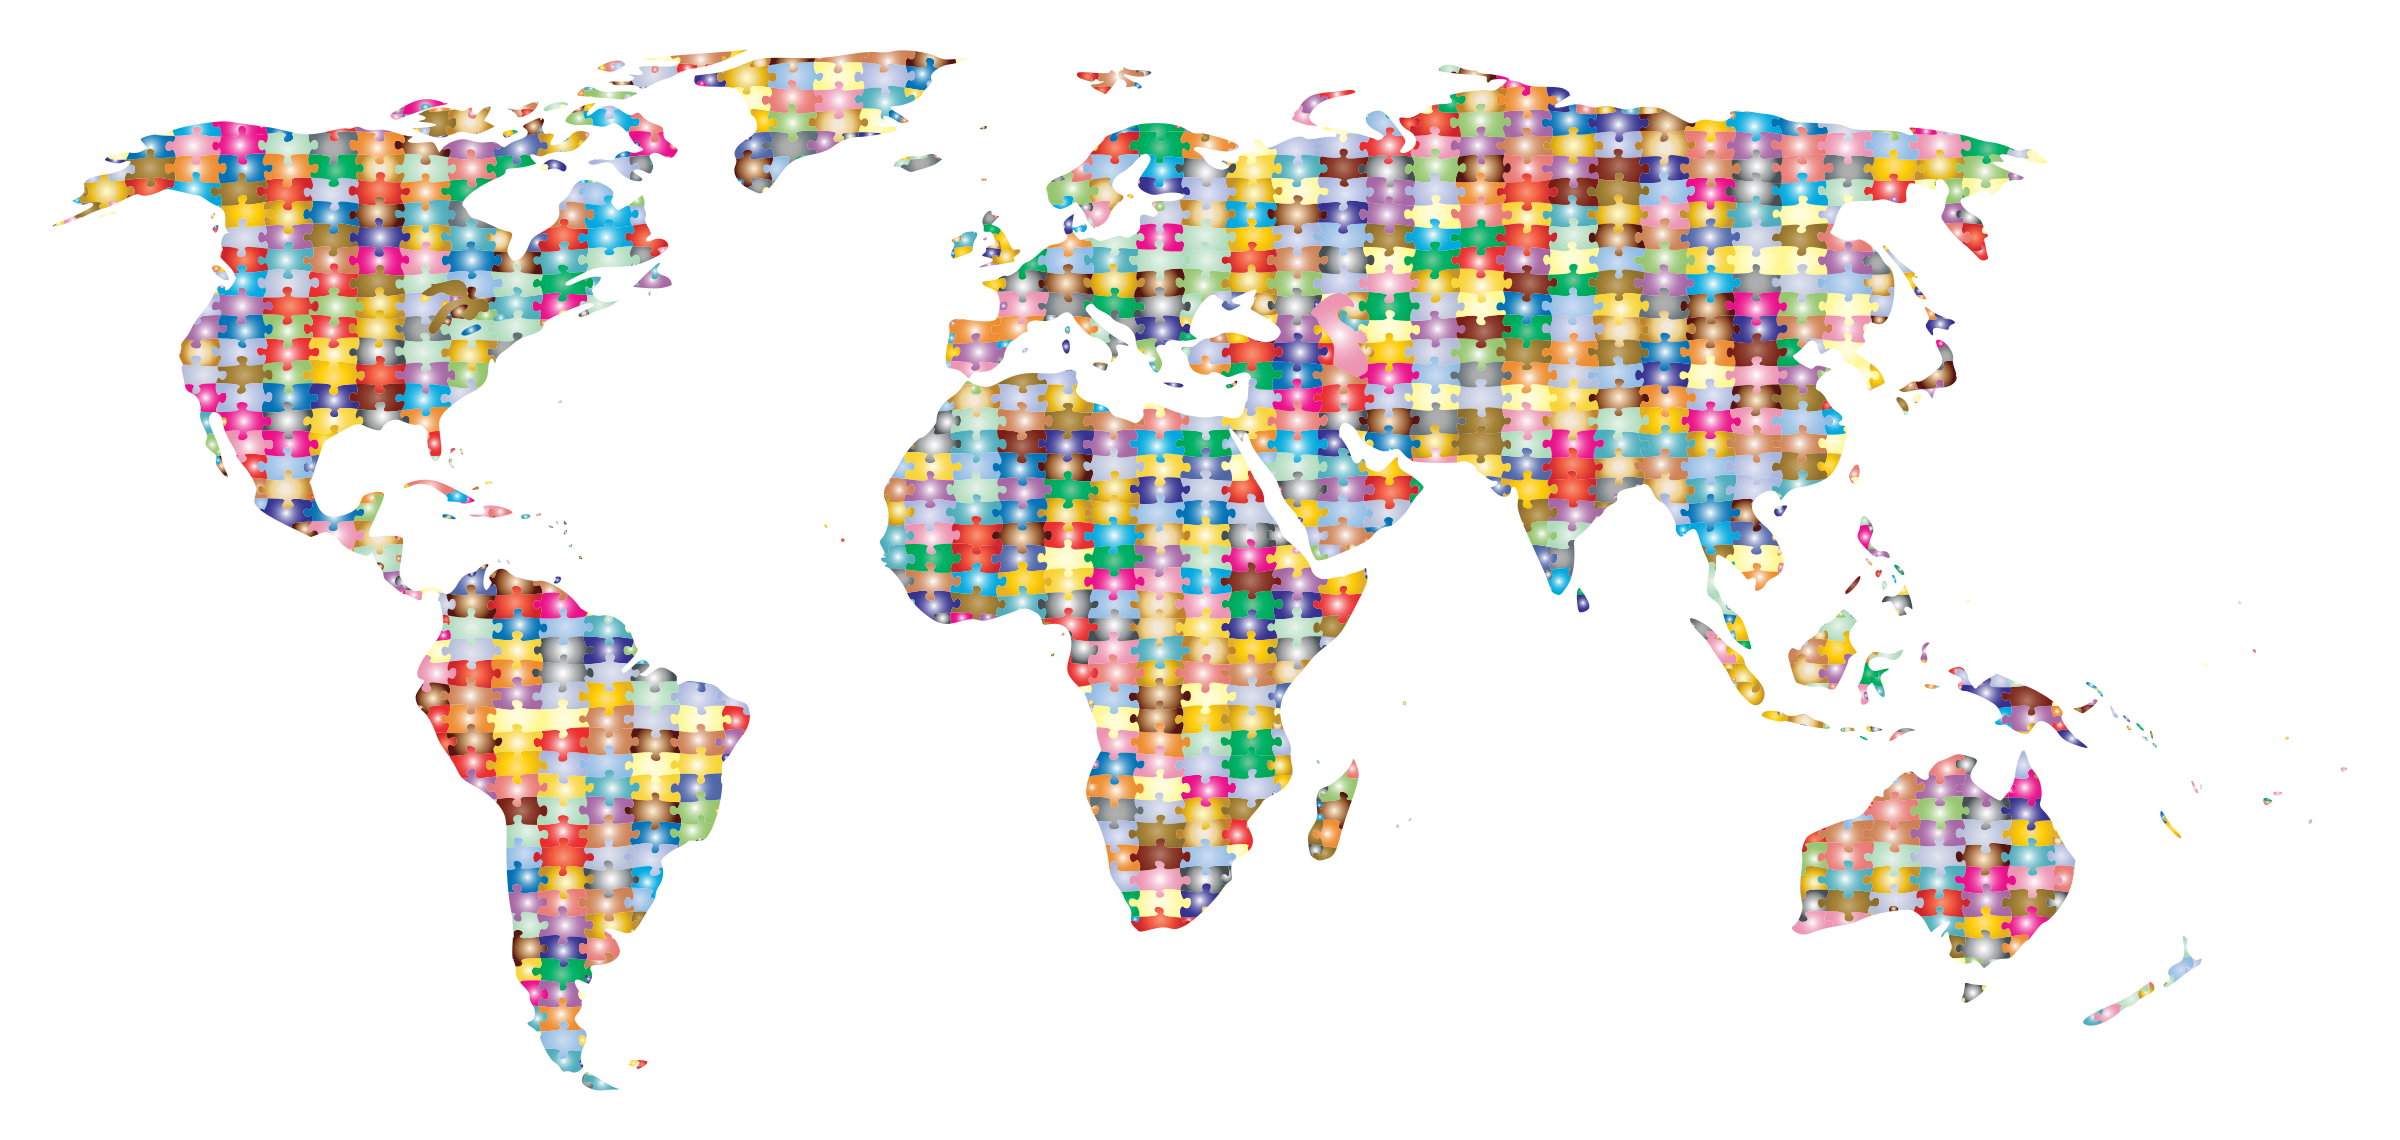 Clipart prismatic jigsaw puzzle world map 3 prismatic jigsaw puzzle world map 3 gumiabroncs Images